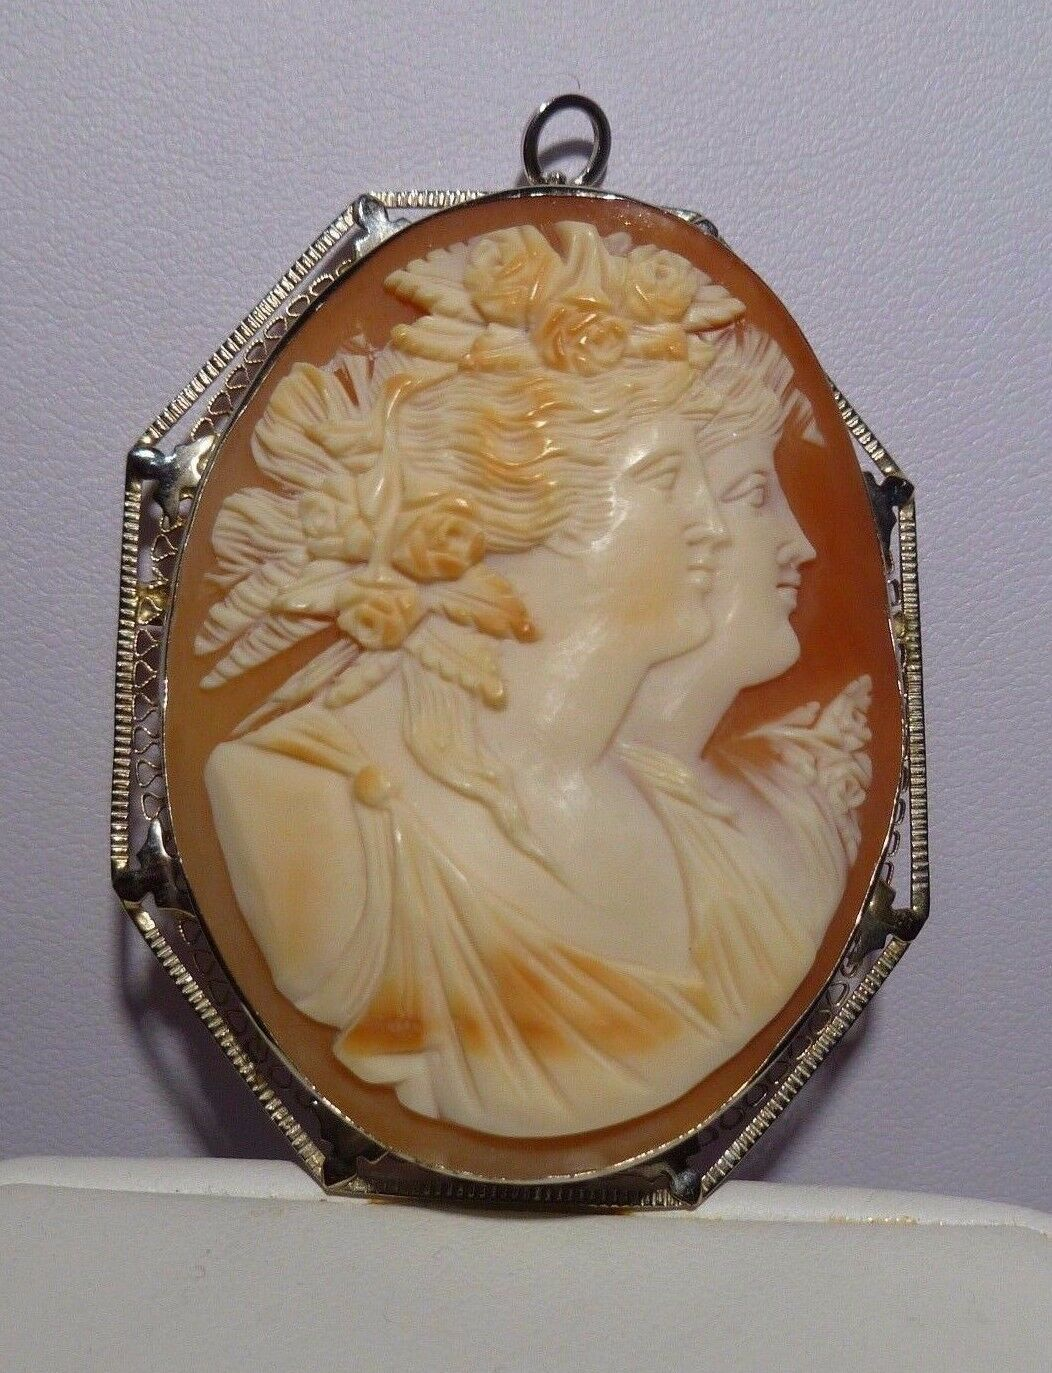 Fabulous Double 2 Faces 14k Y gold Filigree Cameo Shell Pendant Brooch Vintage